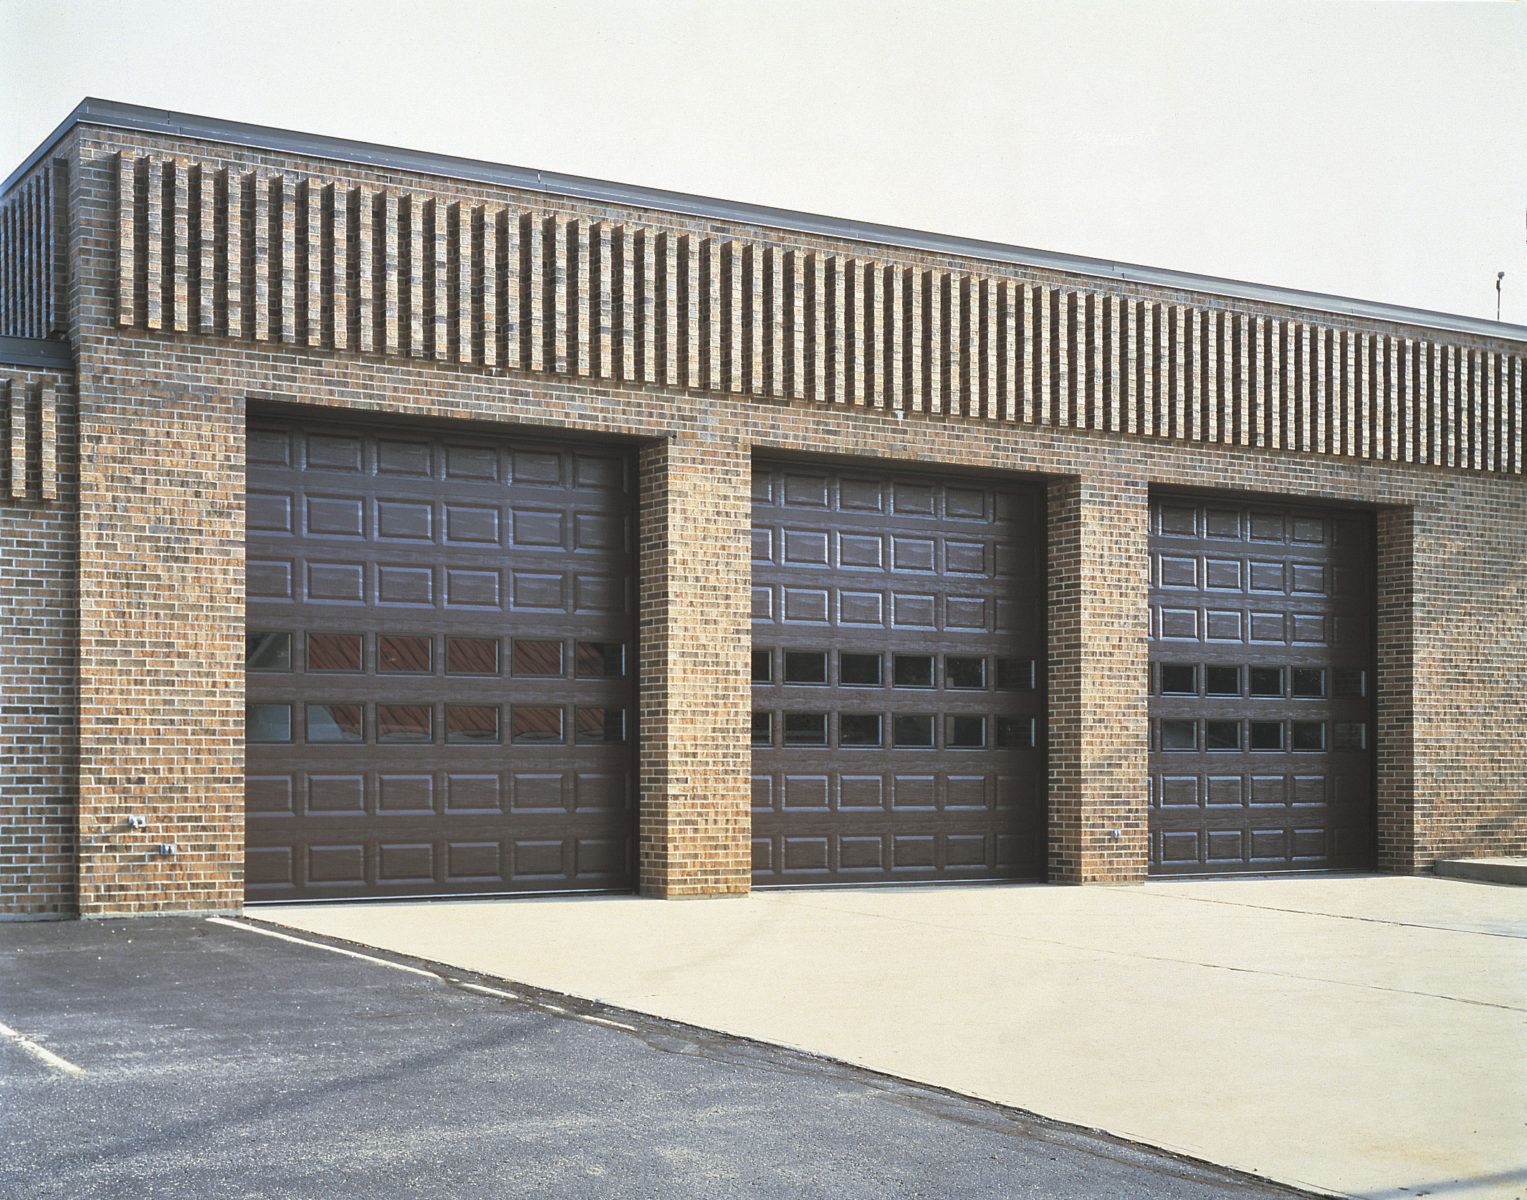 Commercial Garage Doors That Work